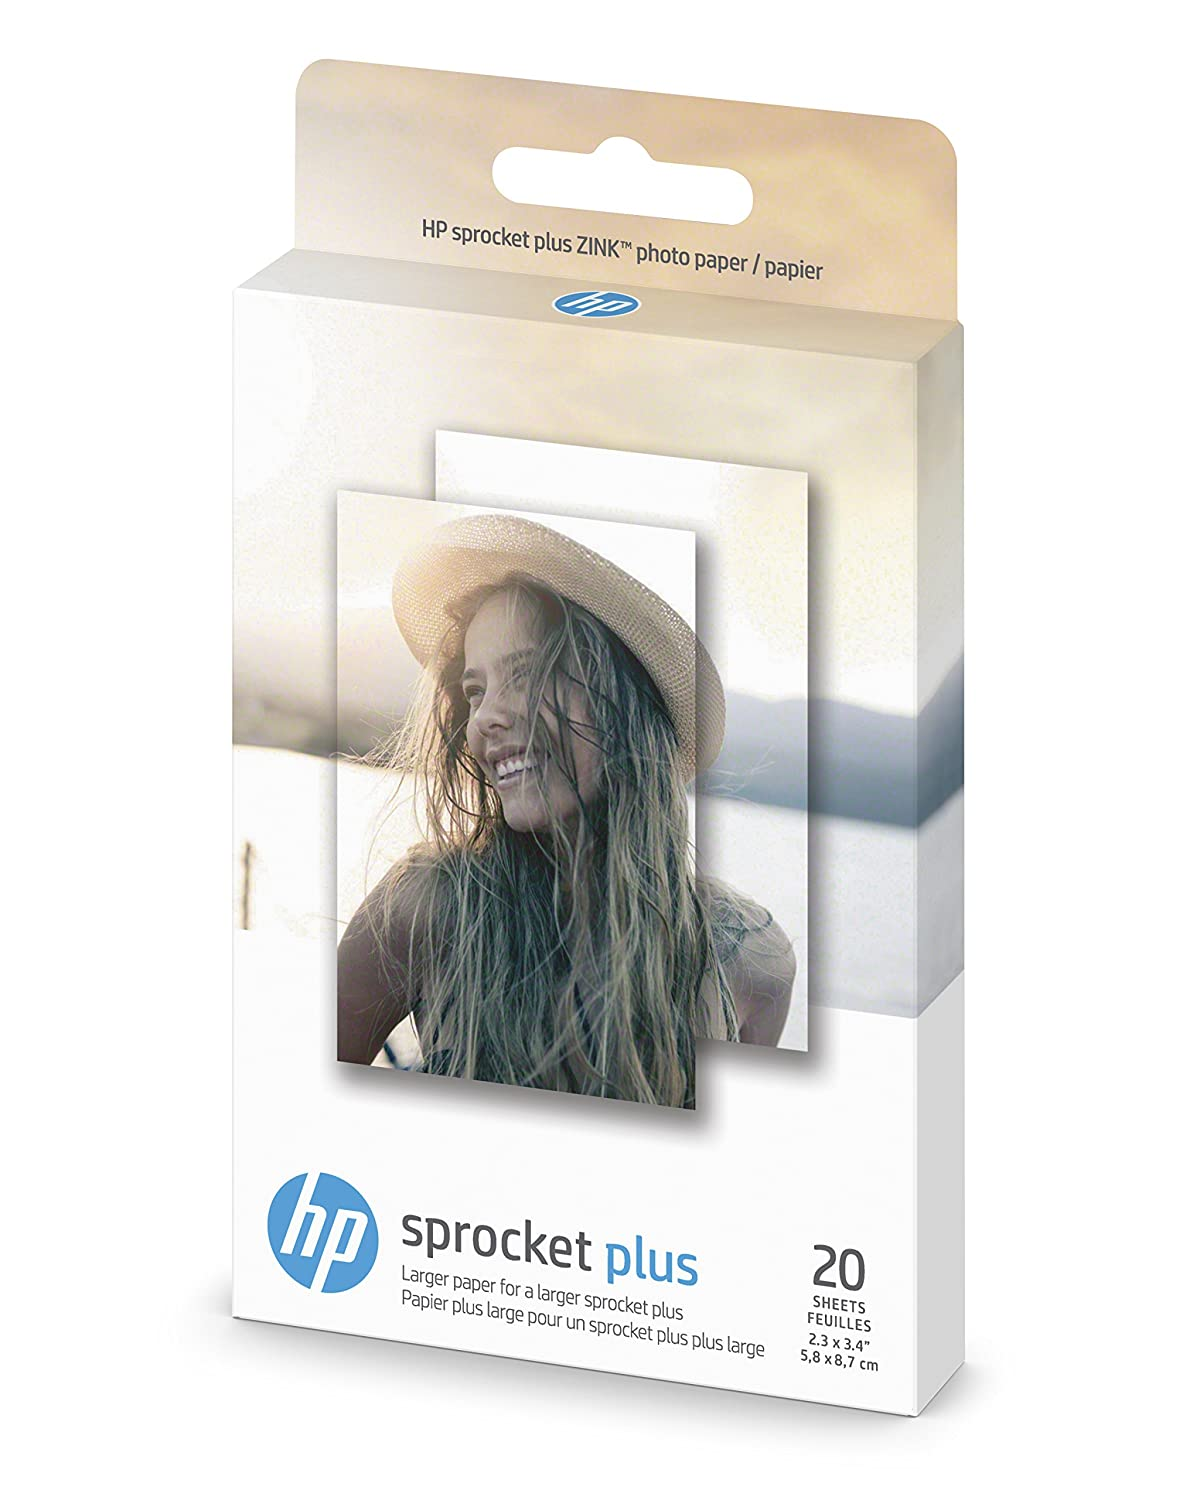 20 Hojas Papel Fotografico Para Hp Sprocket Plus